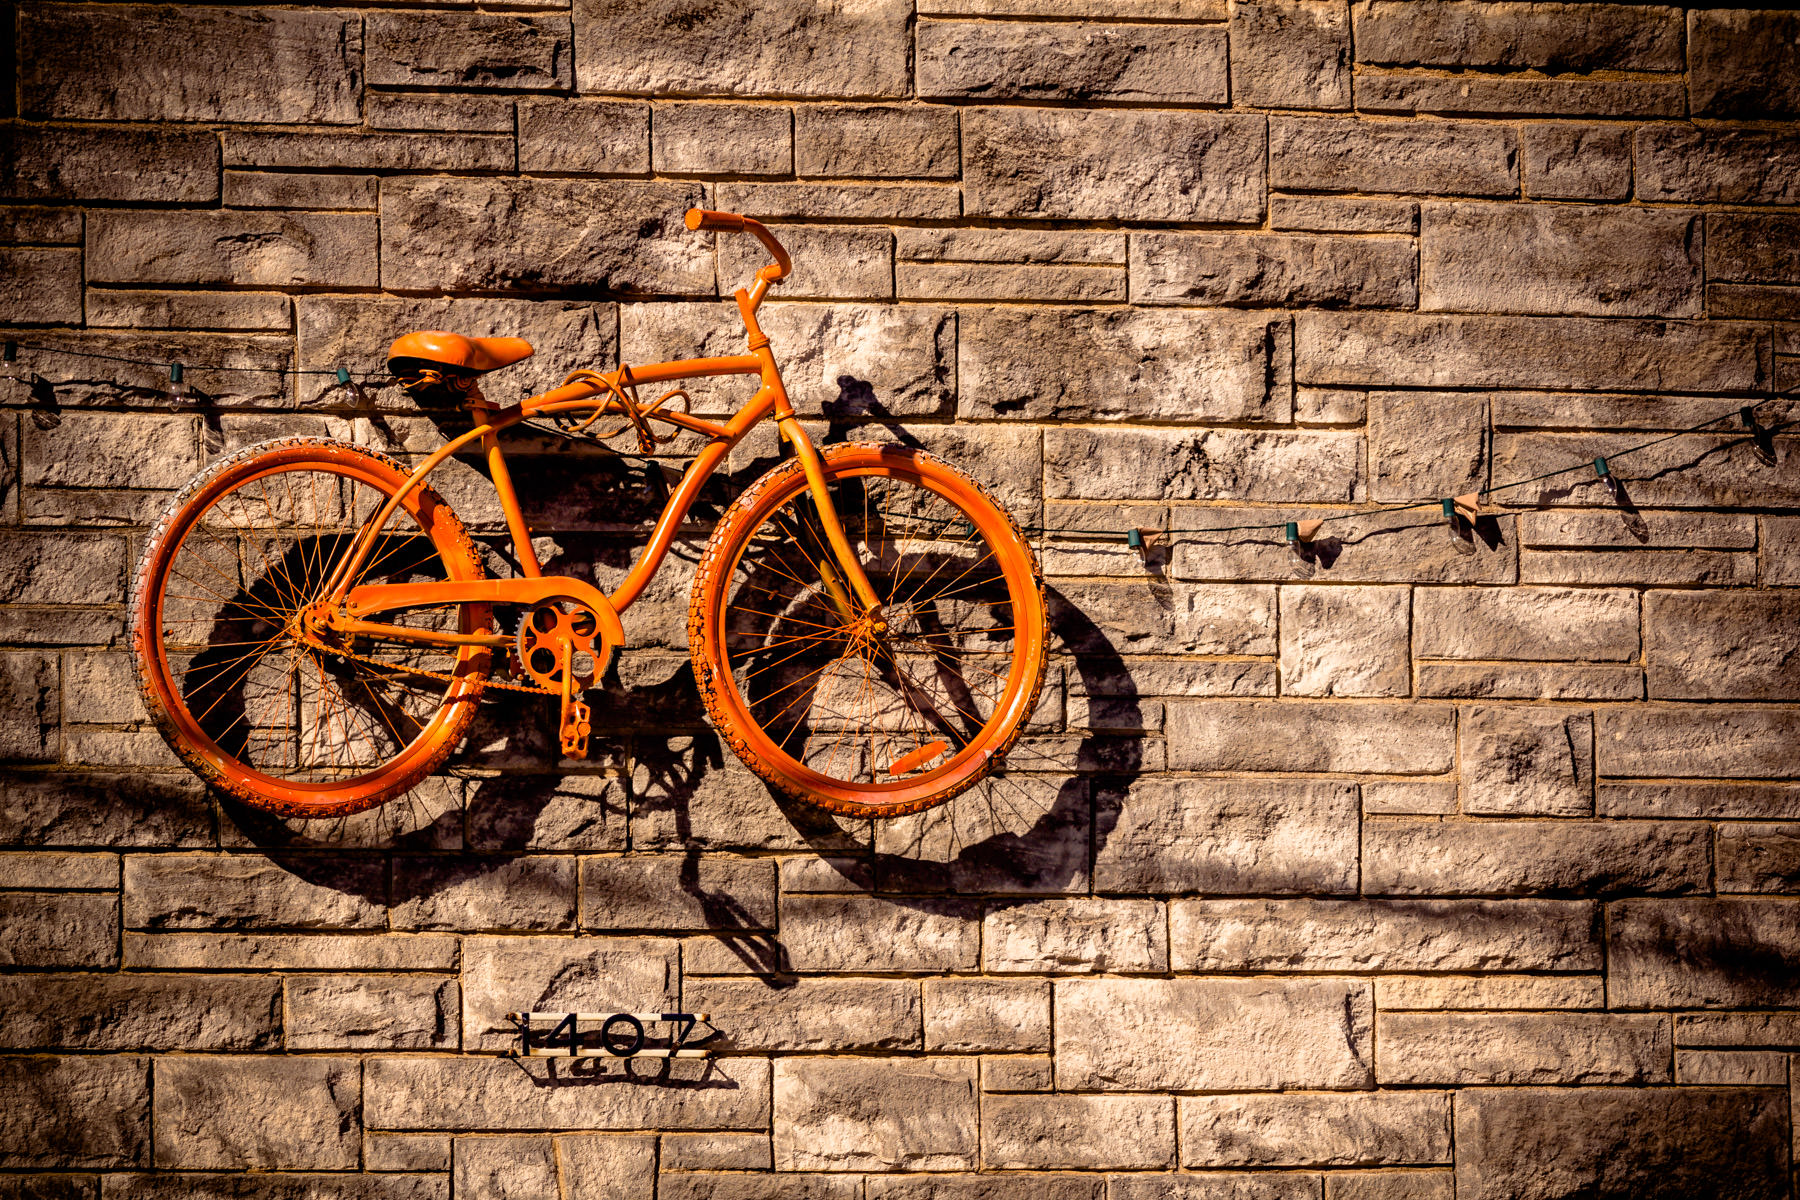 A bicycle as artwork on the side of a custom bike shop in The Cedars, Dallas, Texas.